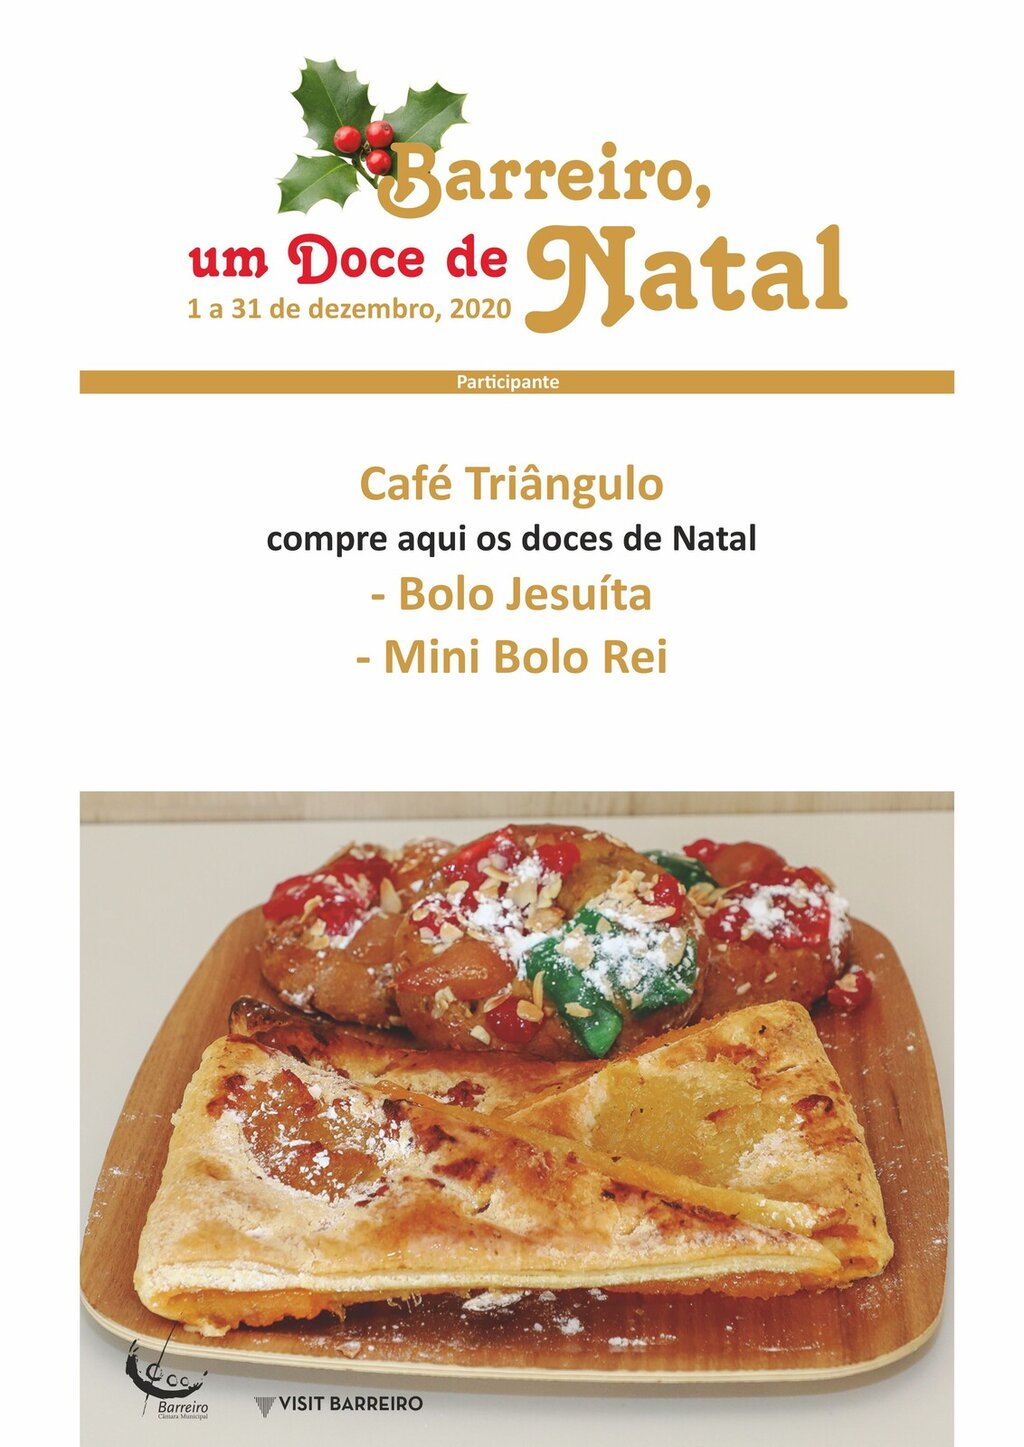 cartaz_individual_a4_brr_doce_natal_triangulo